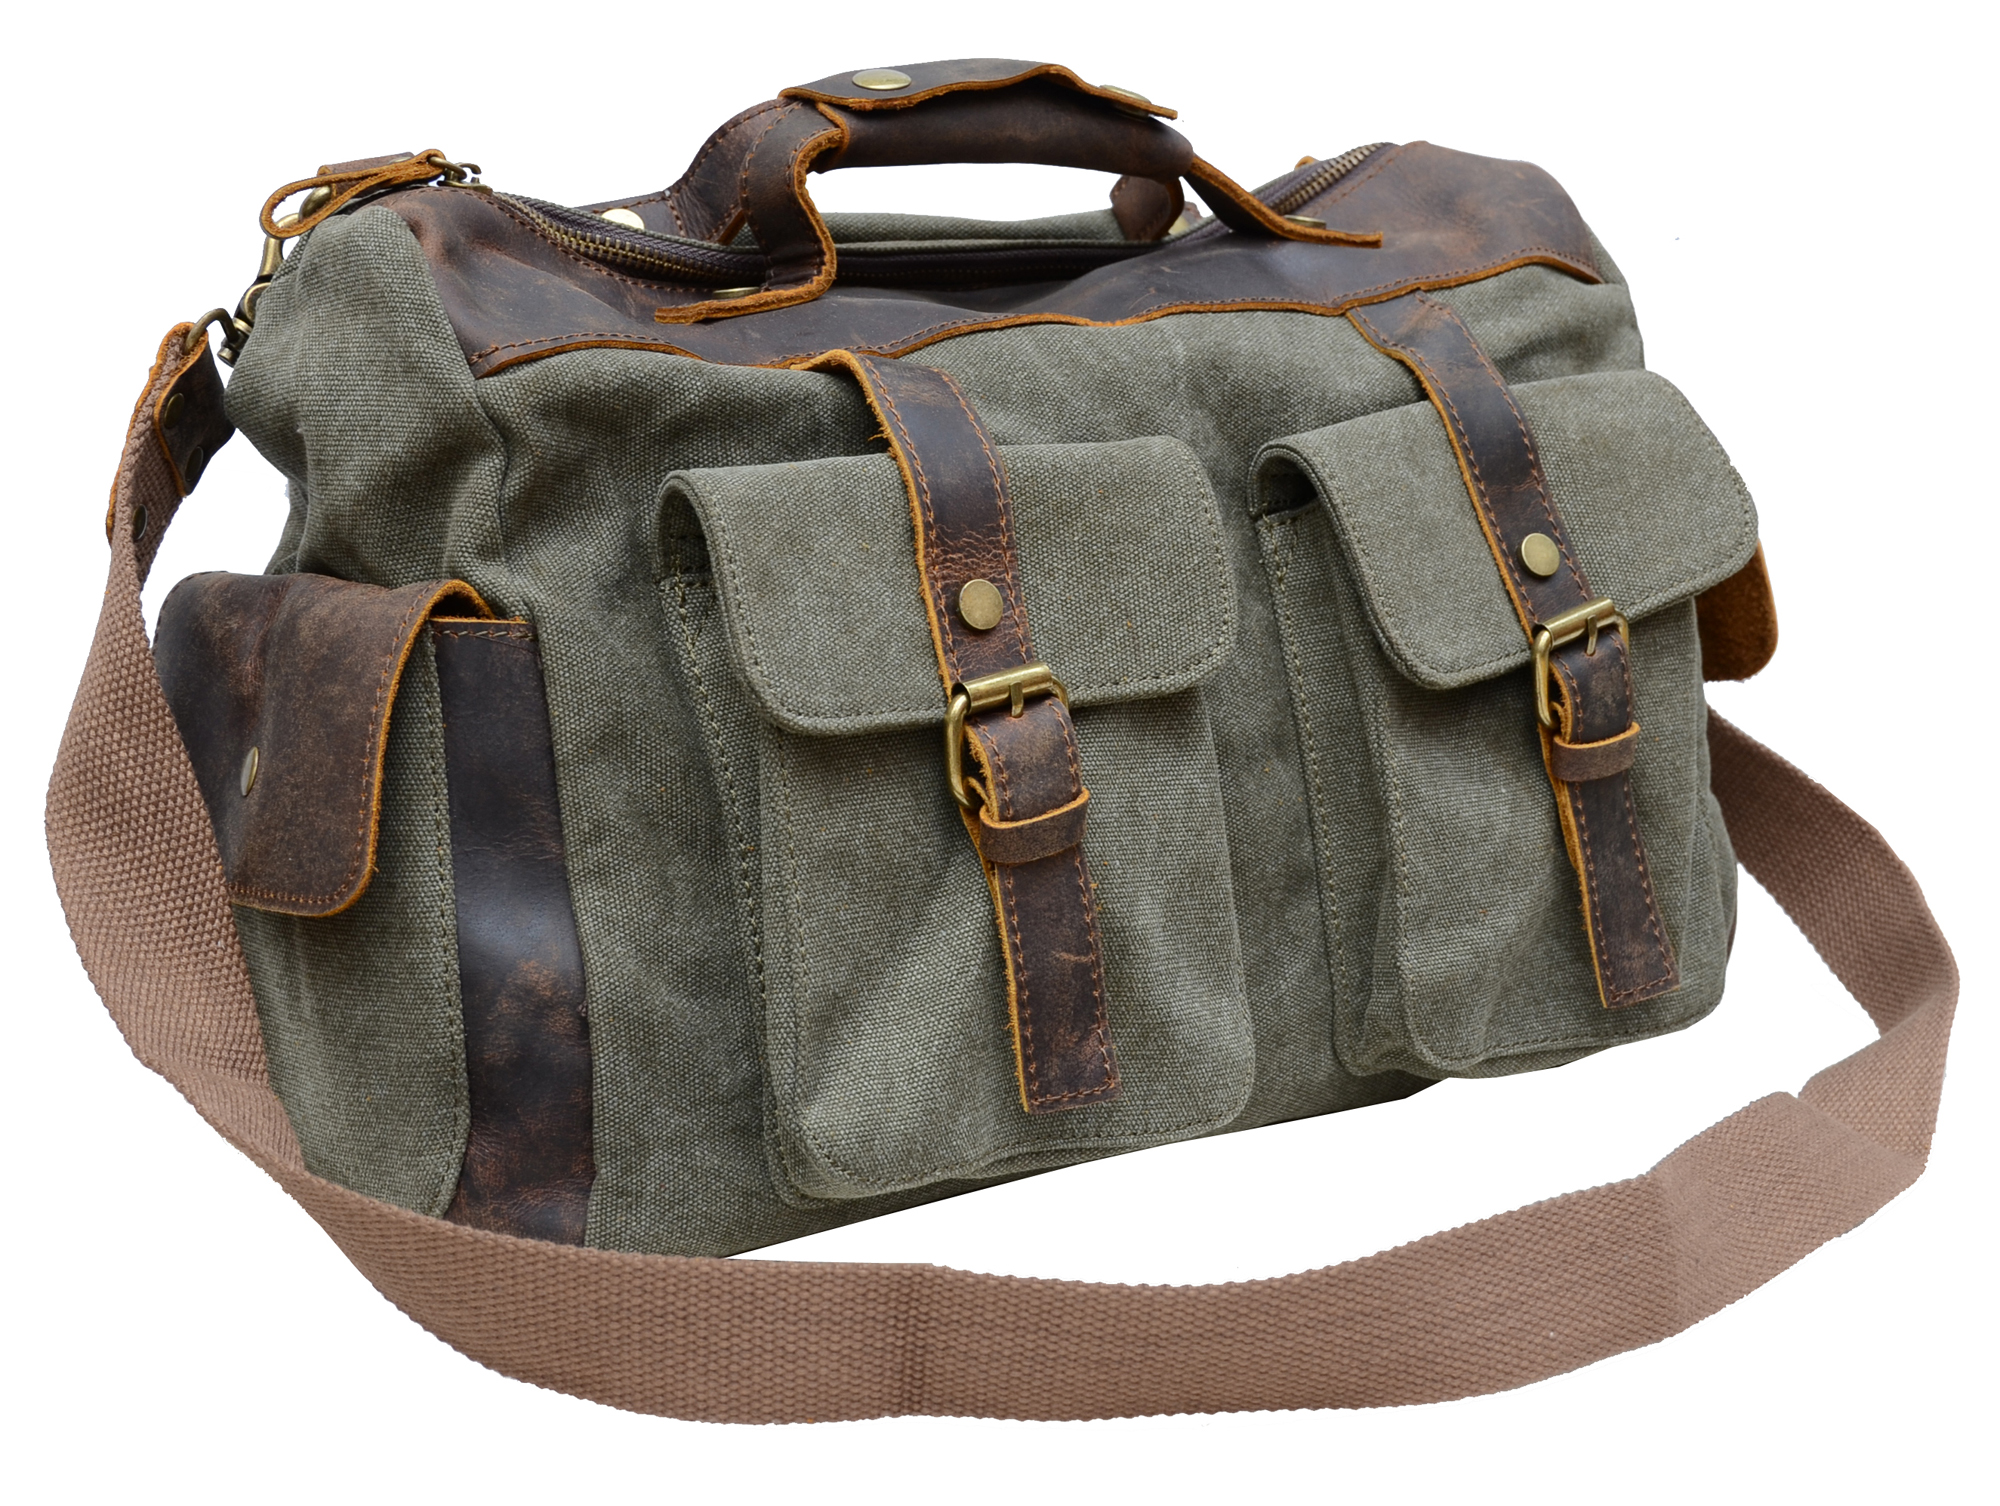 Gootium Vintage Canvas Genuine Leather Shoulder Bag Duffle Weekend ...